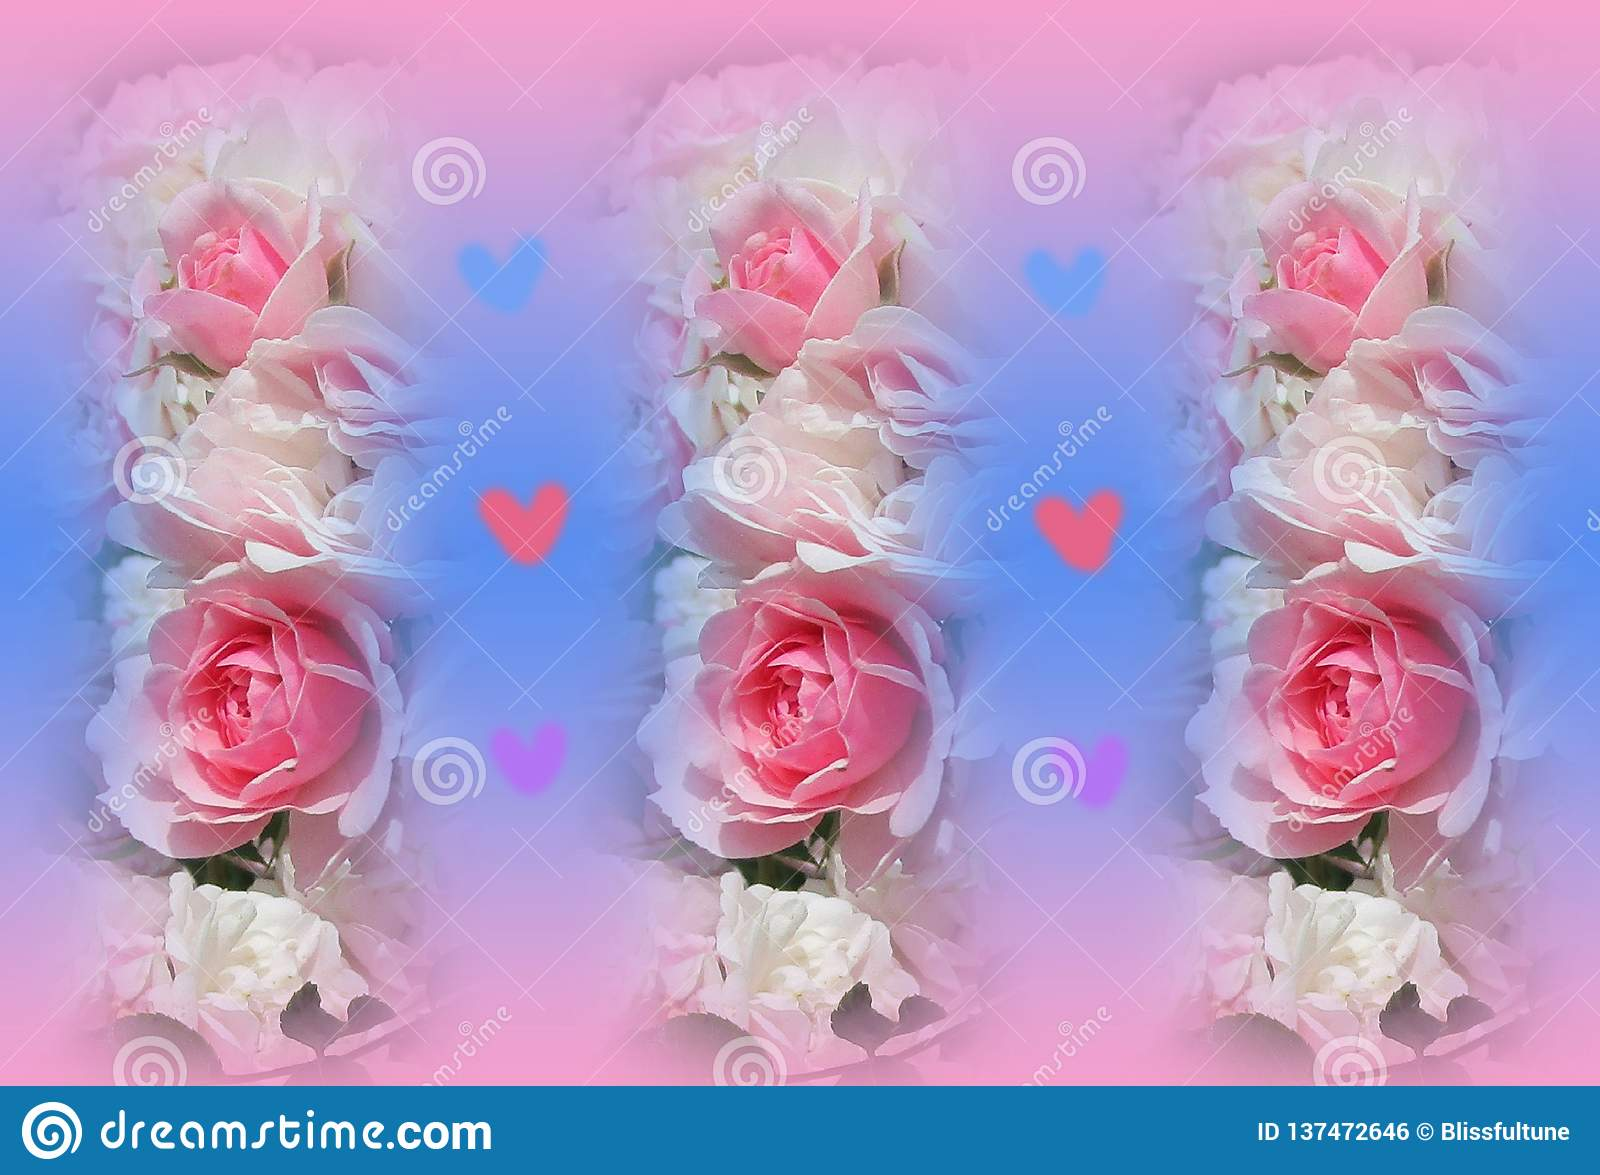 Colorful Pink And White Bonica Roses Wallpaper Stock Illustration